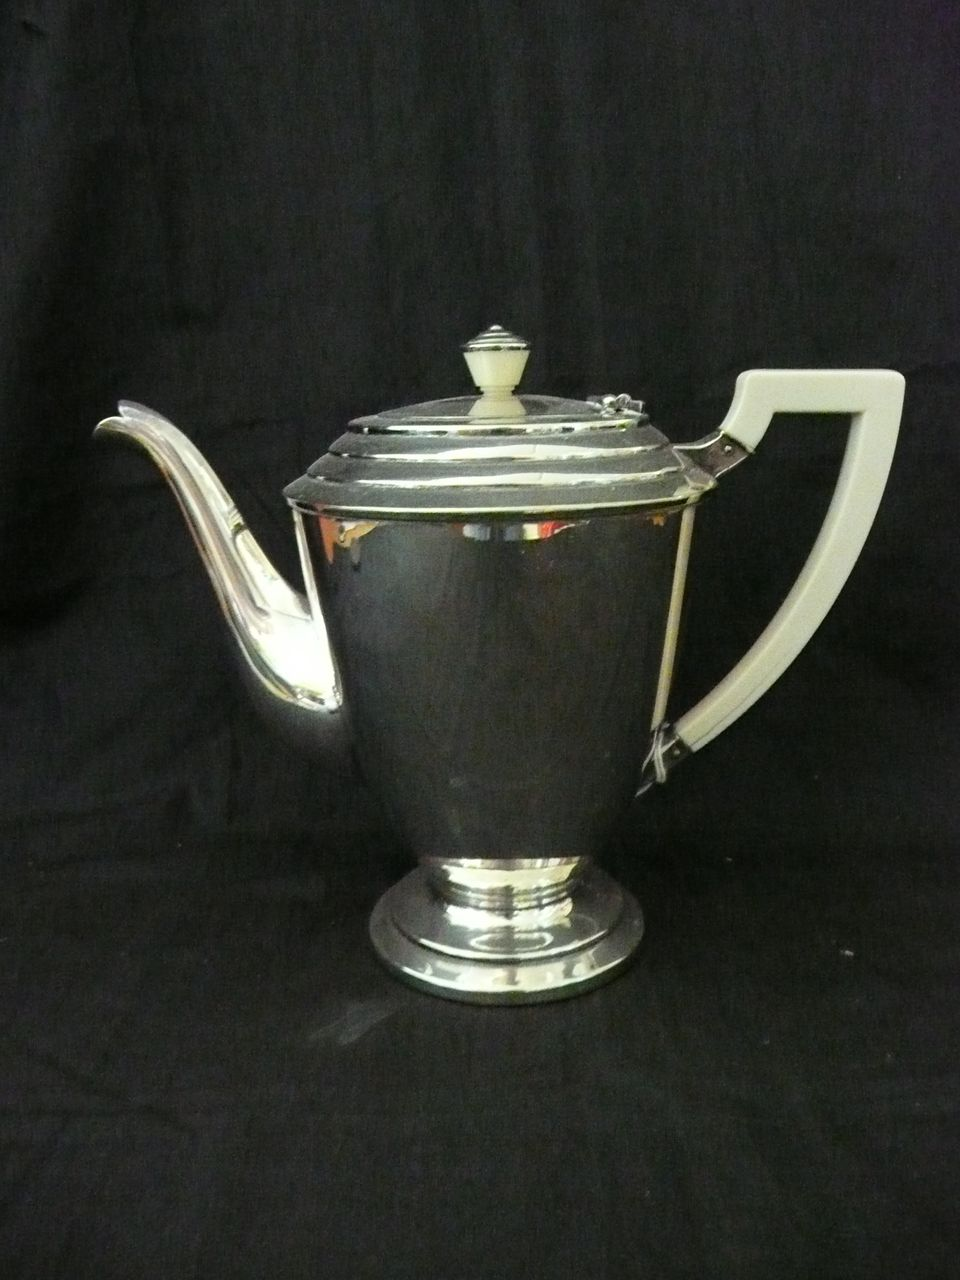 ART DECO Heckworth Tea Pot Circa 1930's